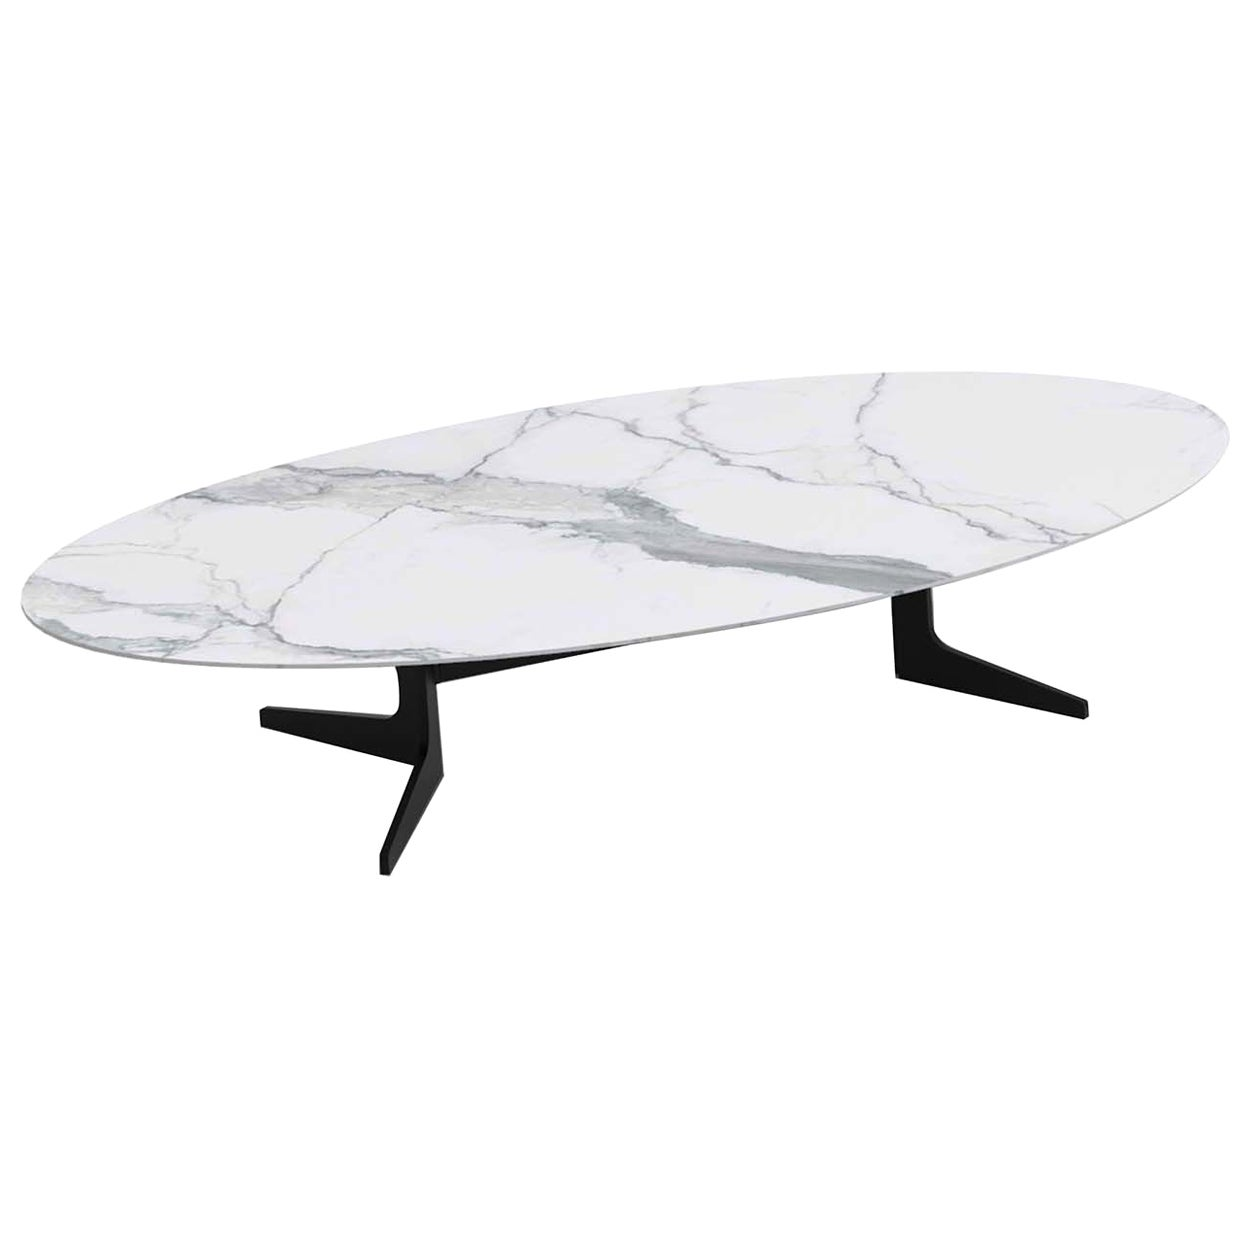 Blake Oval Coffee Table with Calacatta Marble Top